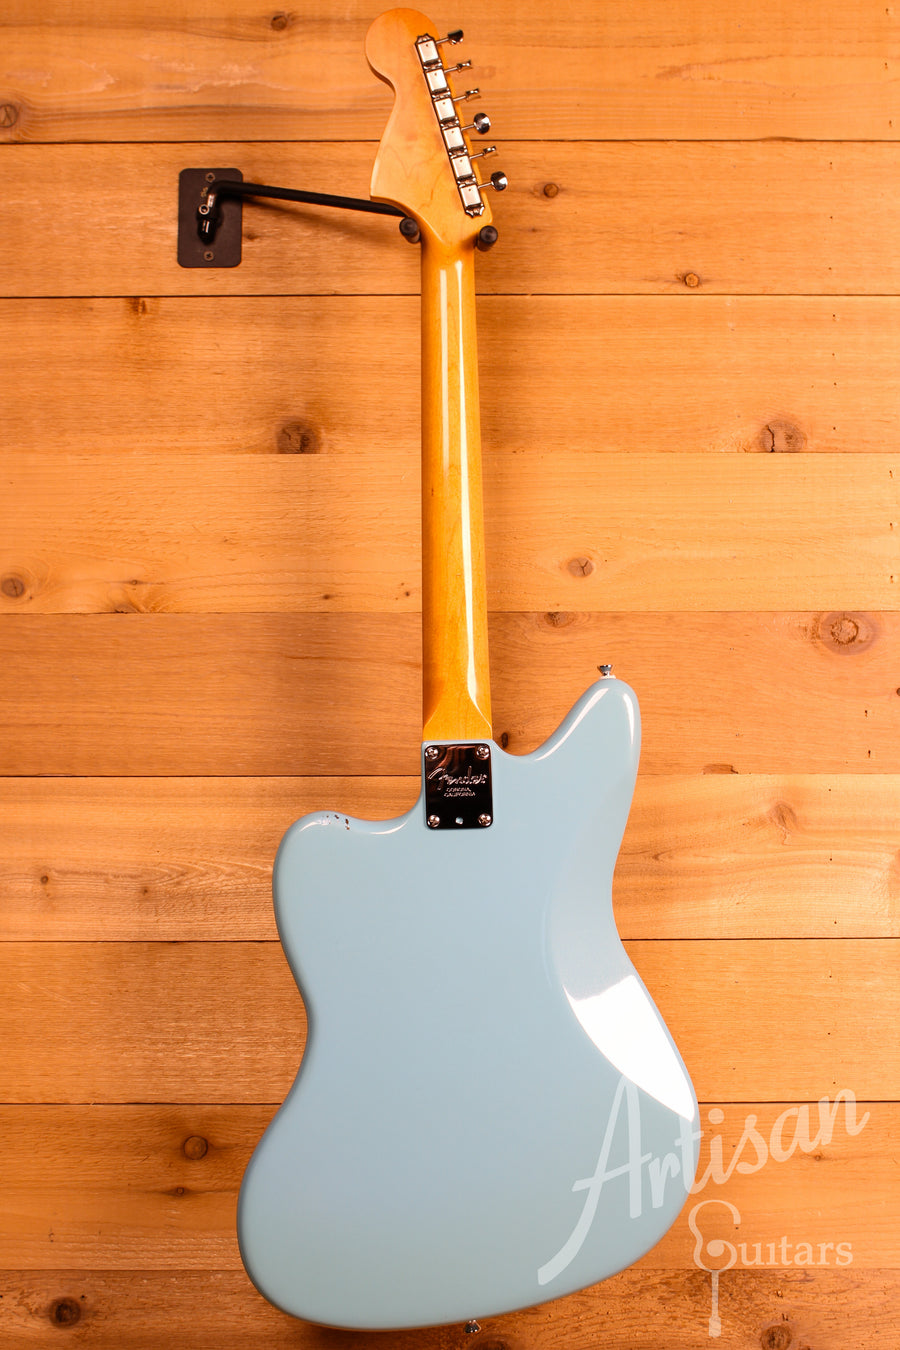 Memphis Guitar Spa Fender Custom Jaguar Blue w/ Cresent Bronze Powder Finish Pre-Owned 2012 - Artisan Guitars